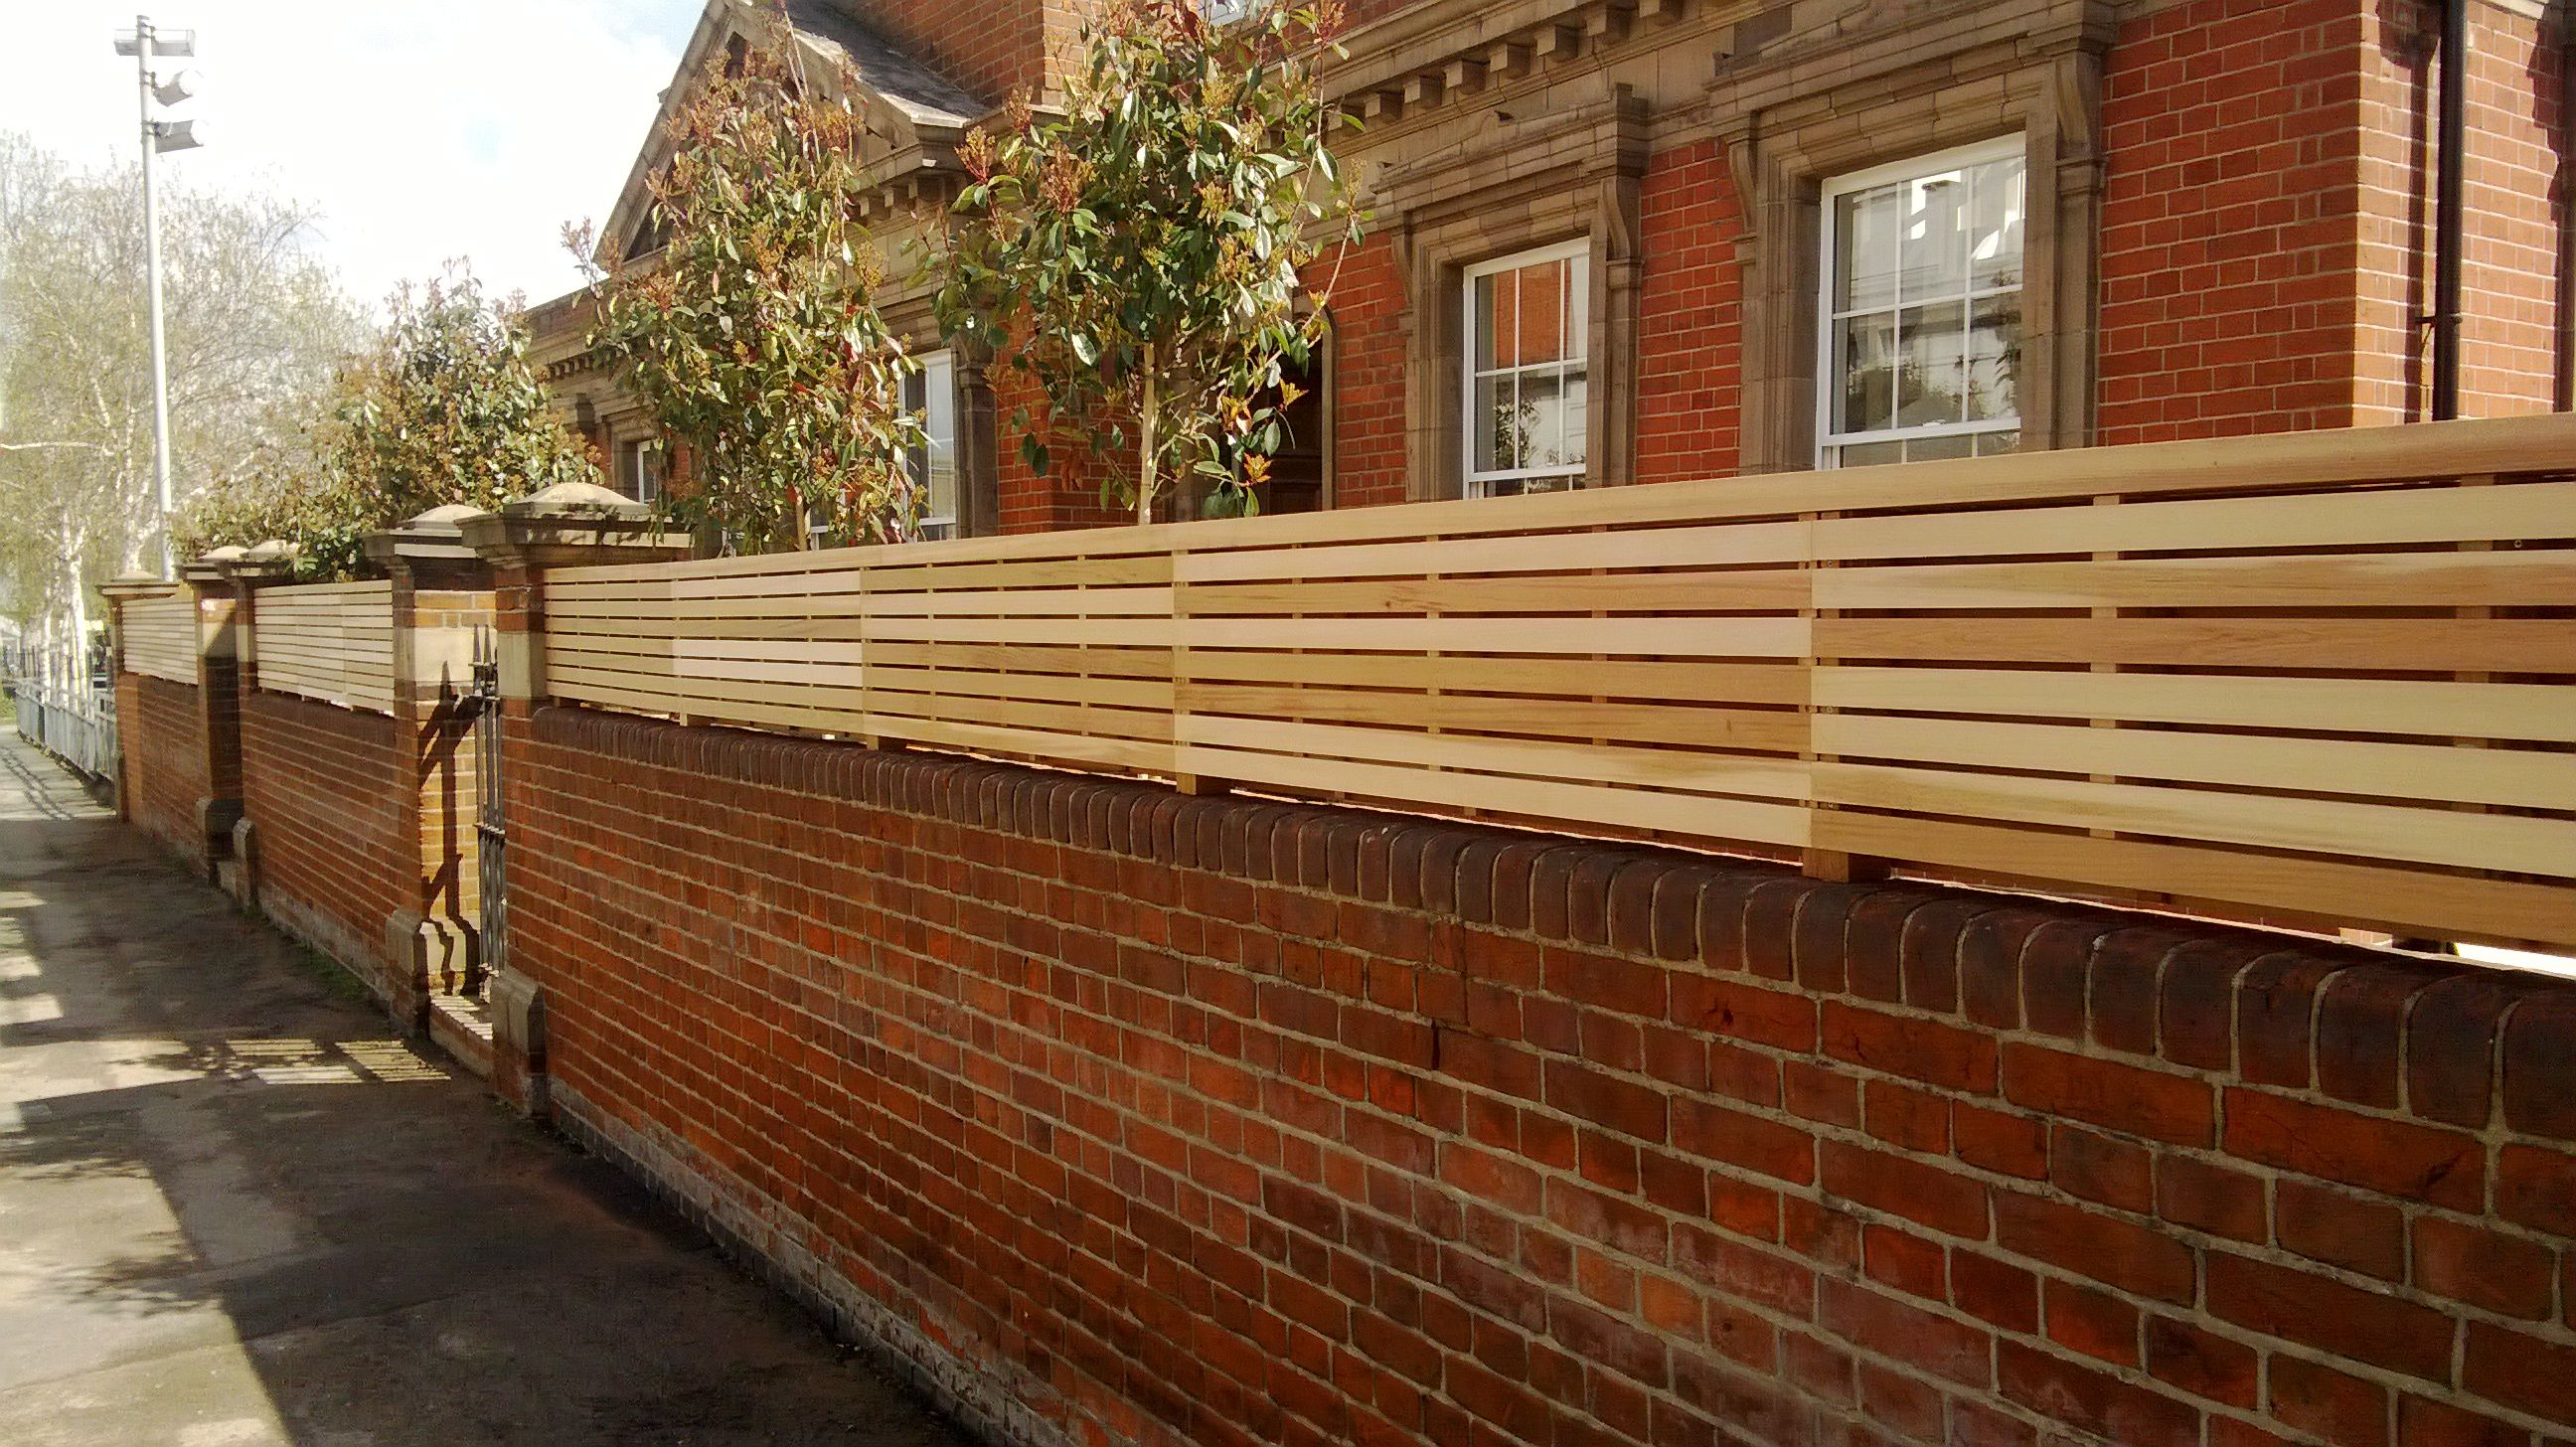 Slatted Panels Fixed To The Top Of A Wall Cedar Paneling Slatted Fence Panels Brick Fence